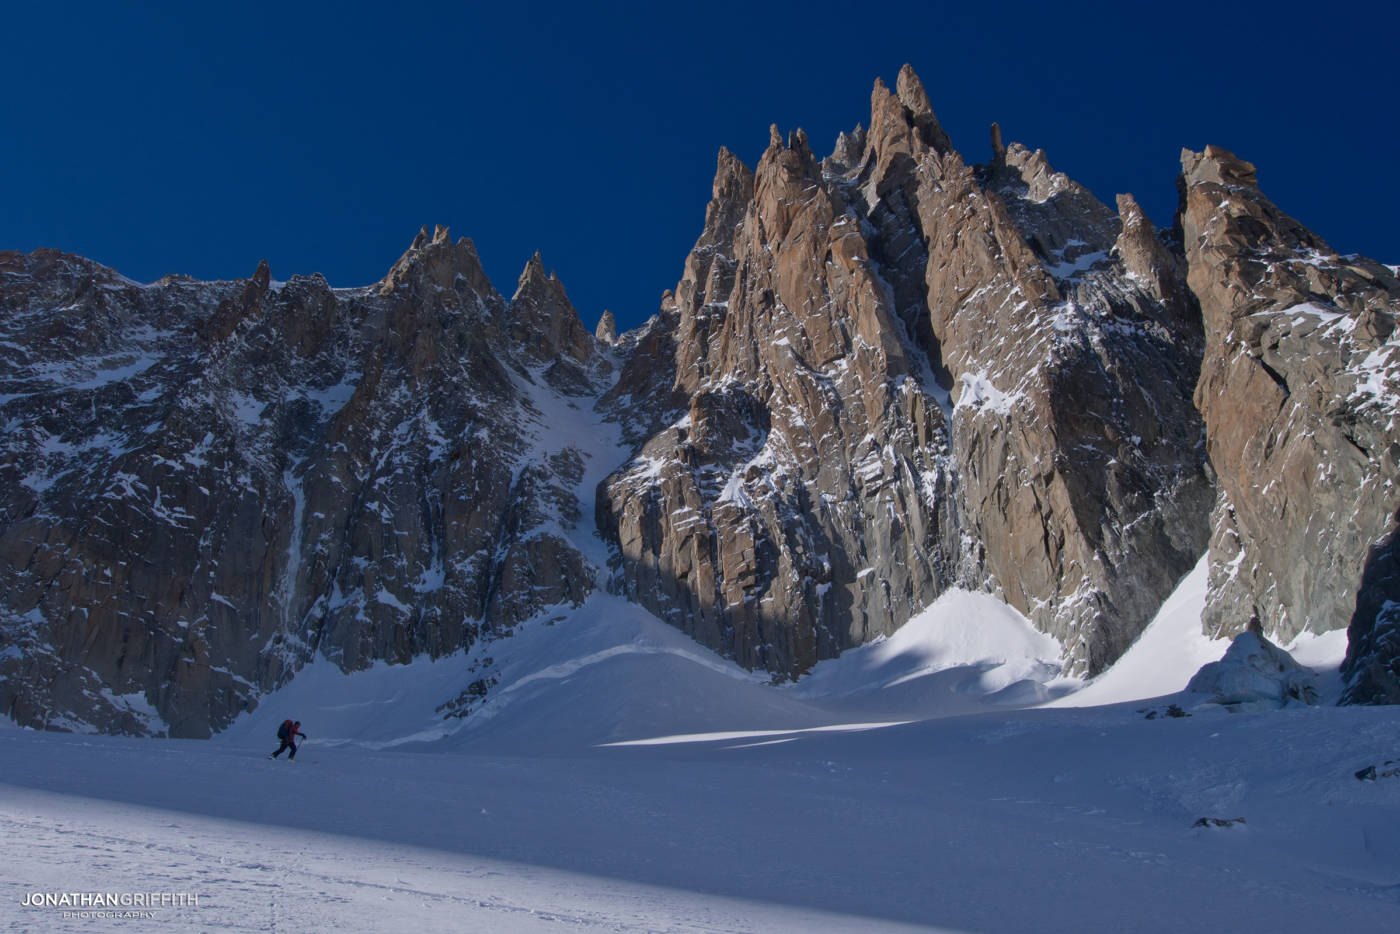 Touring in to the Supercouloir on Mont Blanc du Tacul